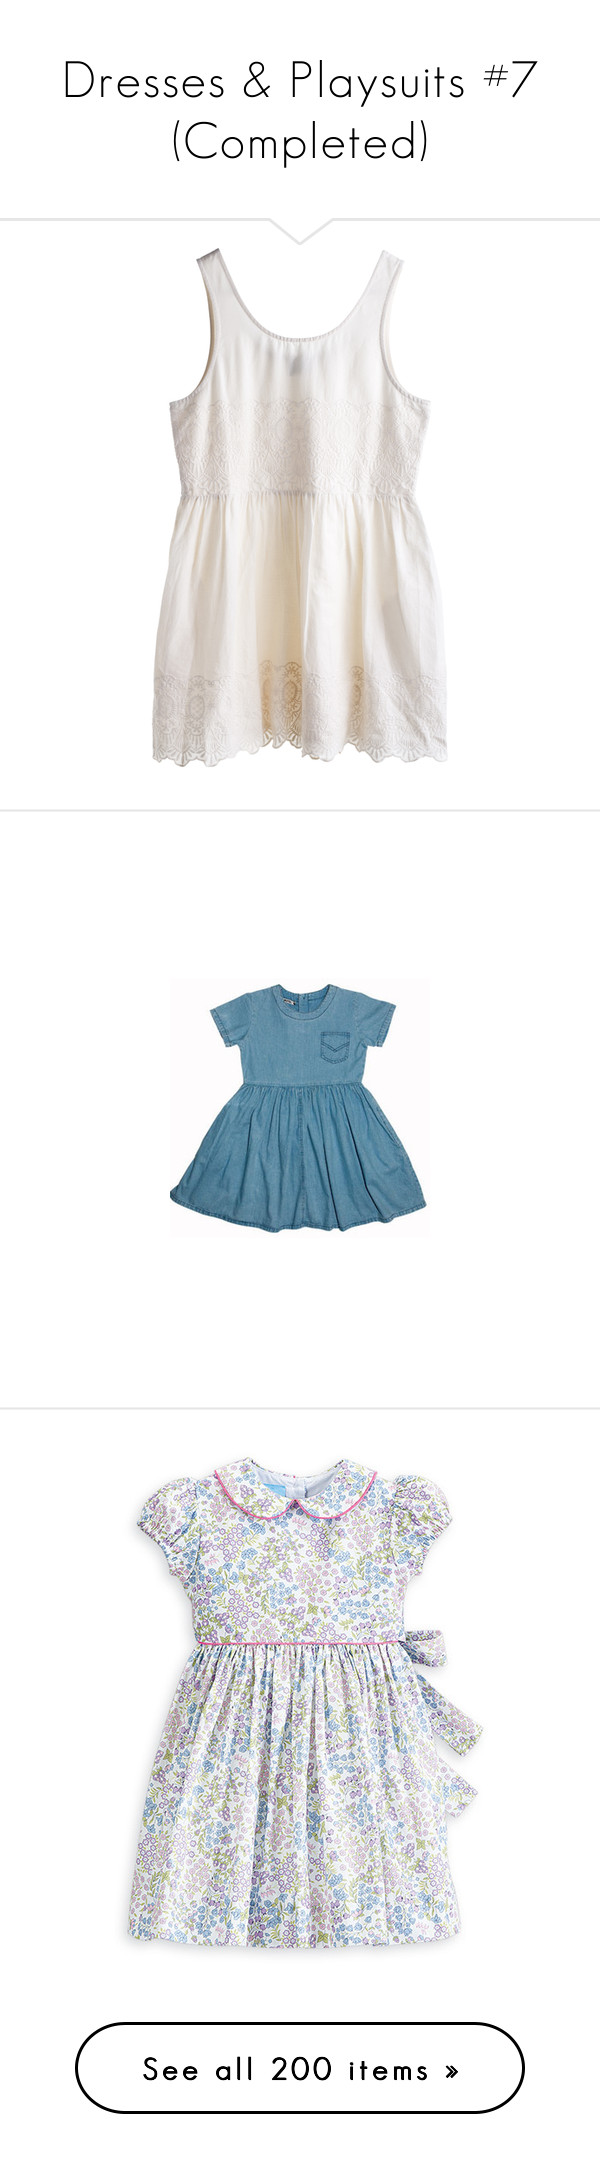 """""""Dresses & Playsuits #7 (Completed)"""" by elisabeth-galfano ❤ liked on Polyvore featuring dresses, tops, vestidos, shirts, mtwtfss weekday, clothes - dresses, blue dress, peter pan collar dress, lining dress and peter pan dress"""